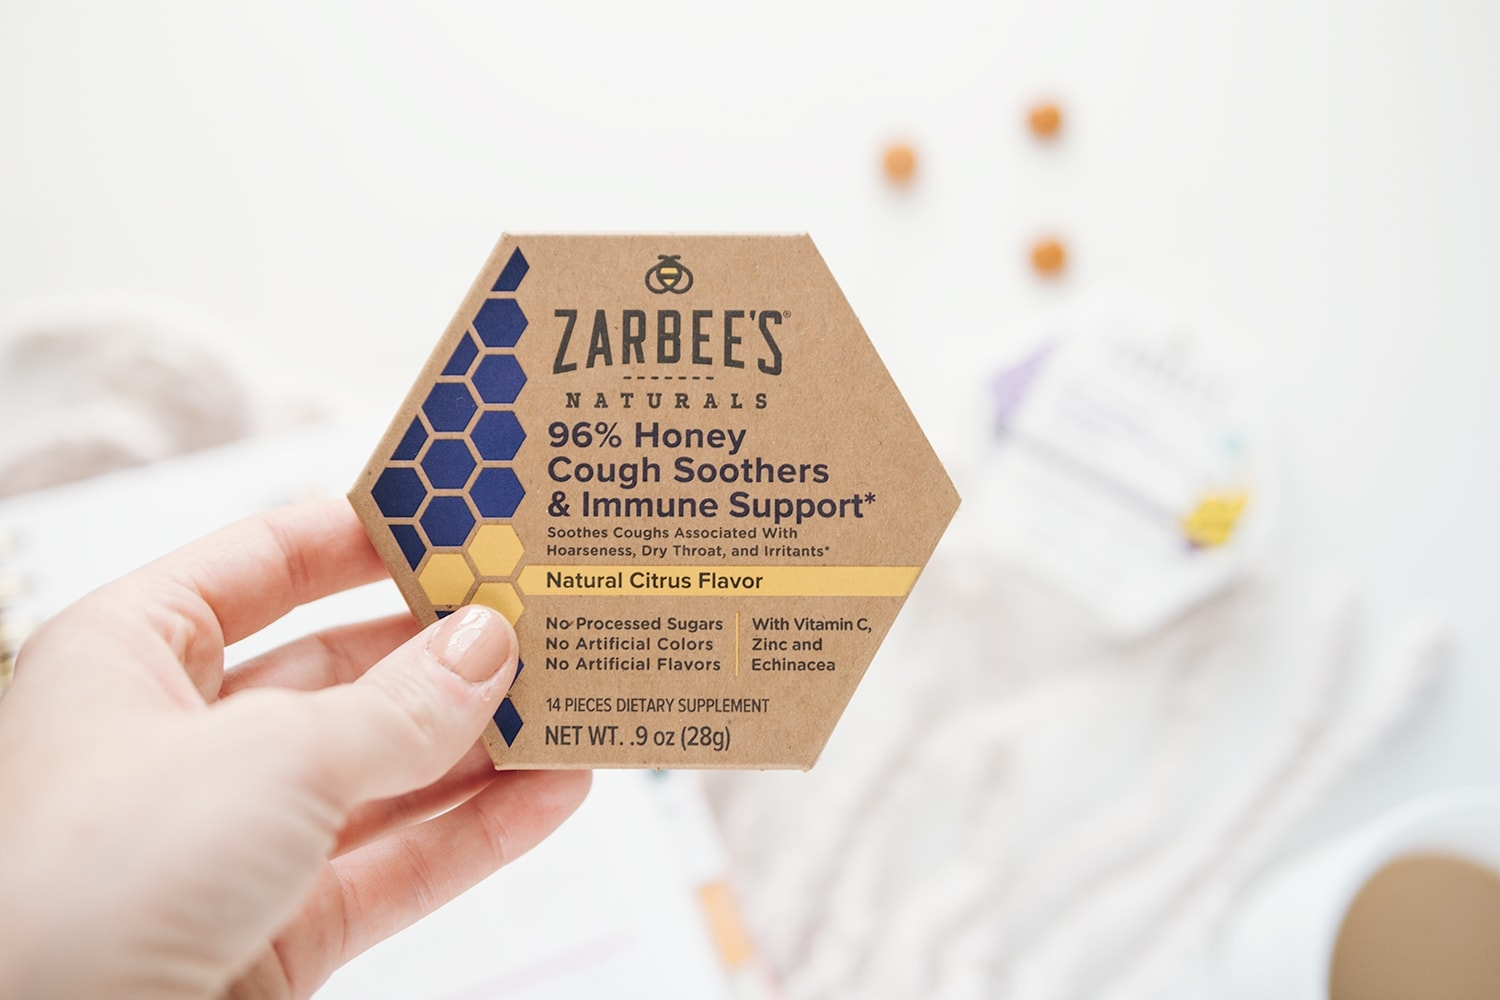 Zarbee's 96% Honey Cough Soothers & Immune Support